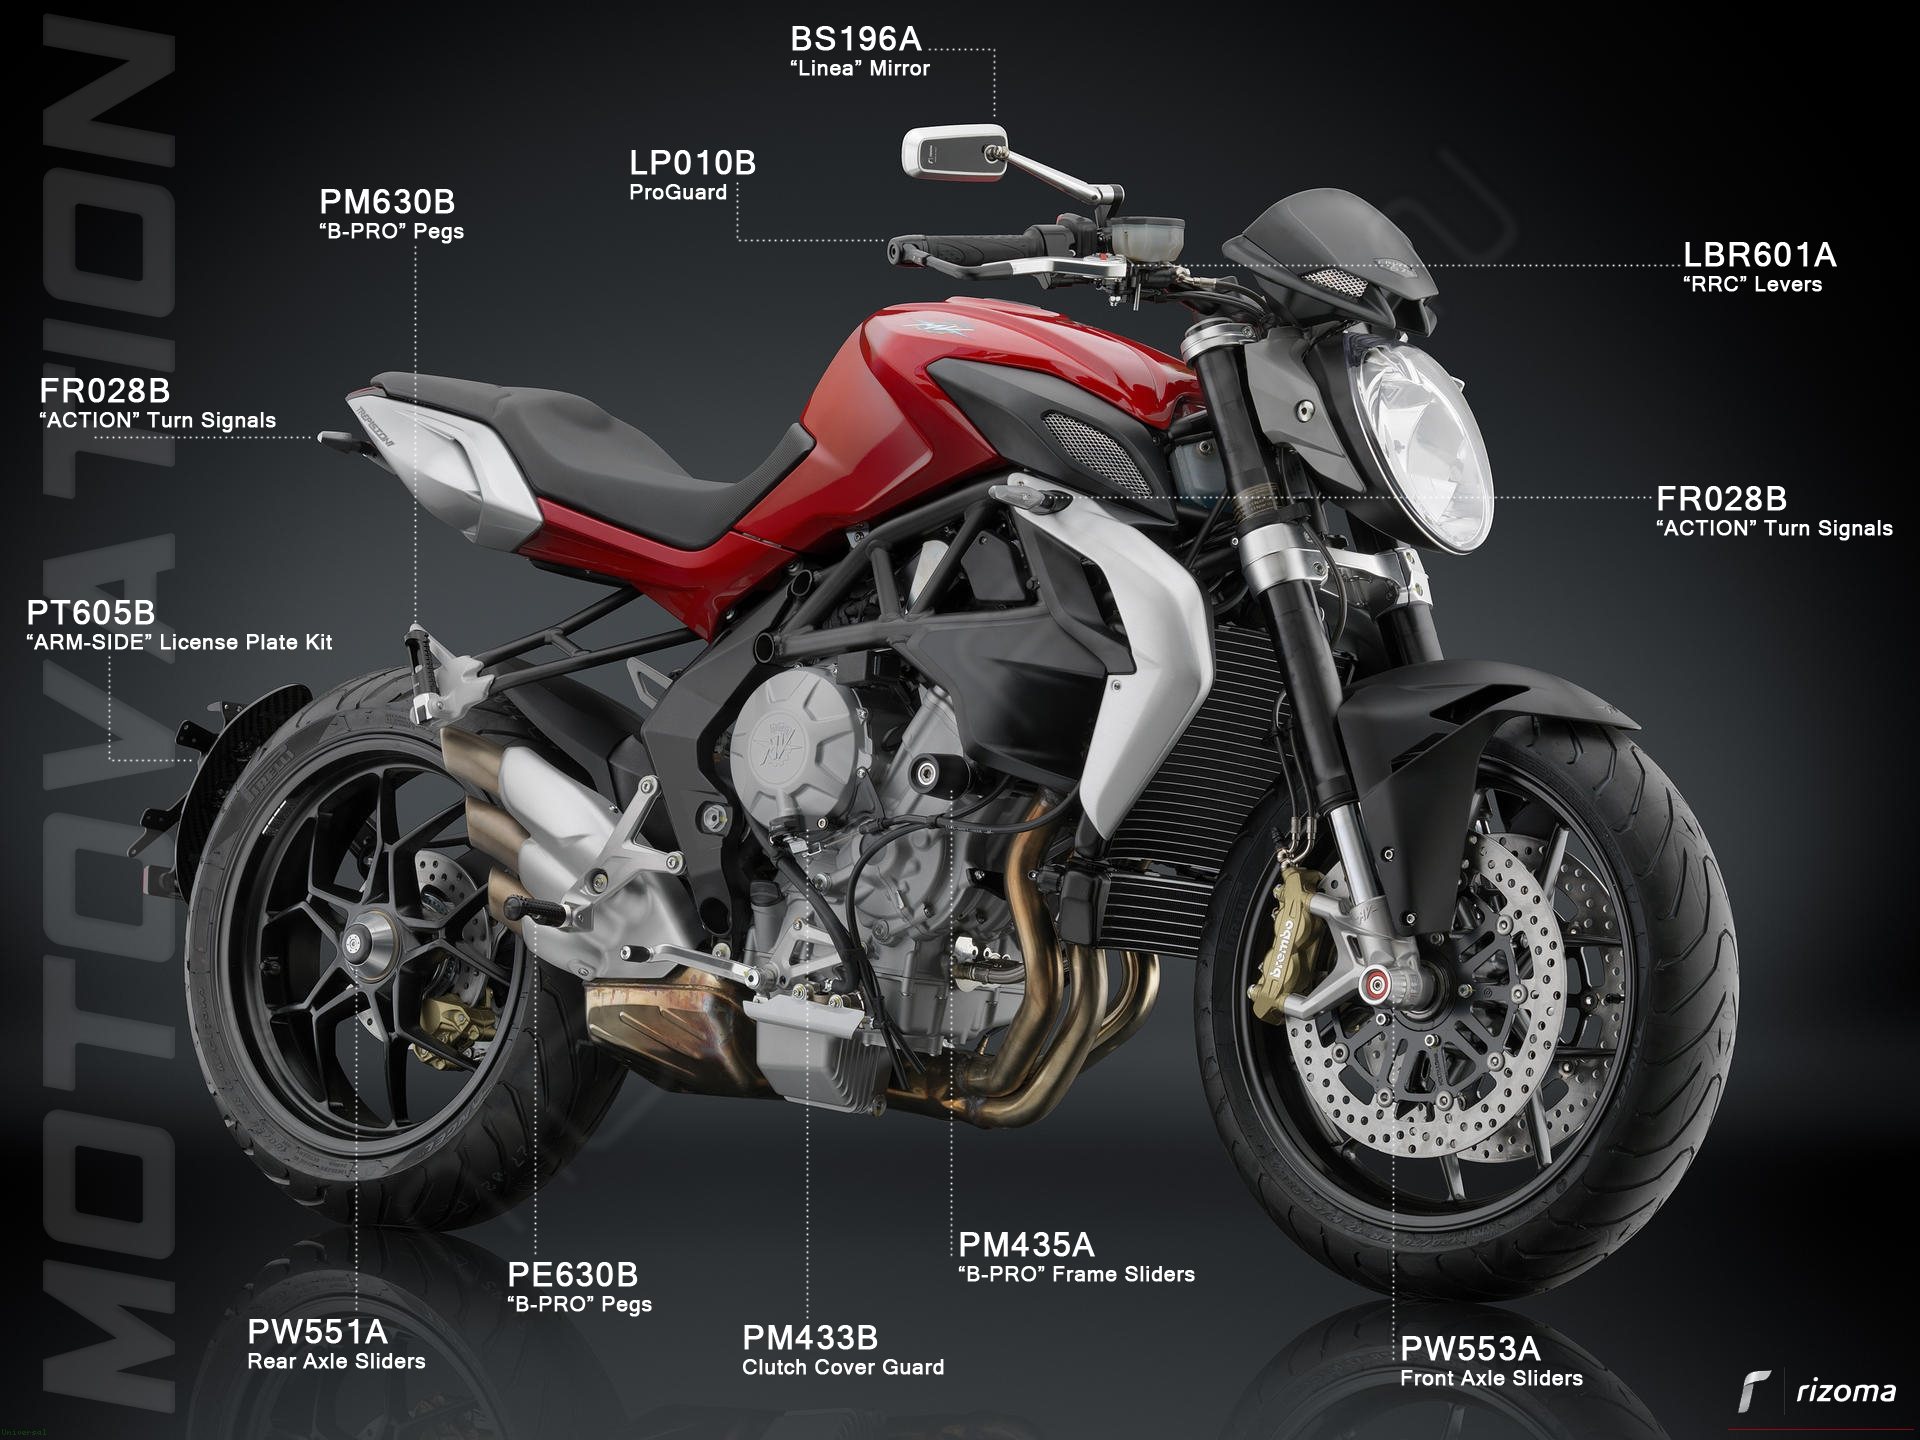 mv agusta brutale 675 right side full diagram FULL_1 m_m_y Universal 2016 fz 09 front turn signal wire diagram \u2022 indy500 co  at mifinder.co